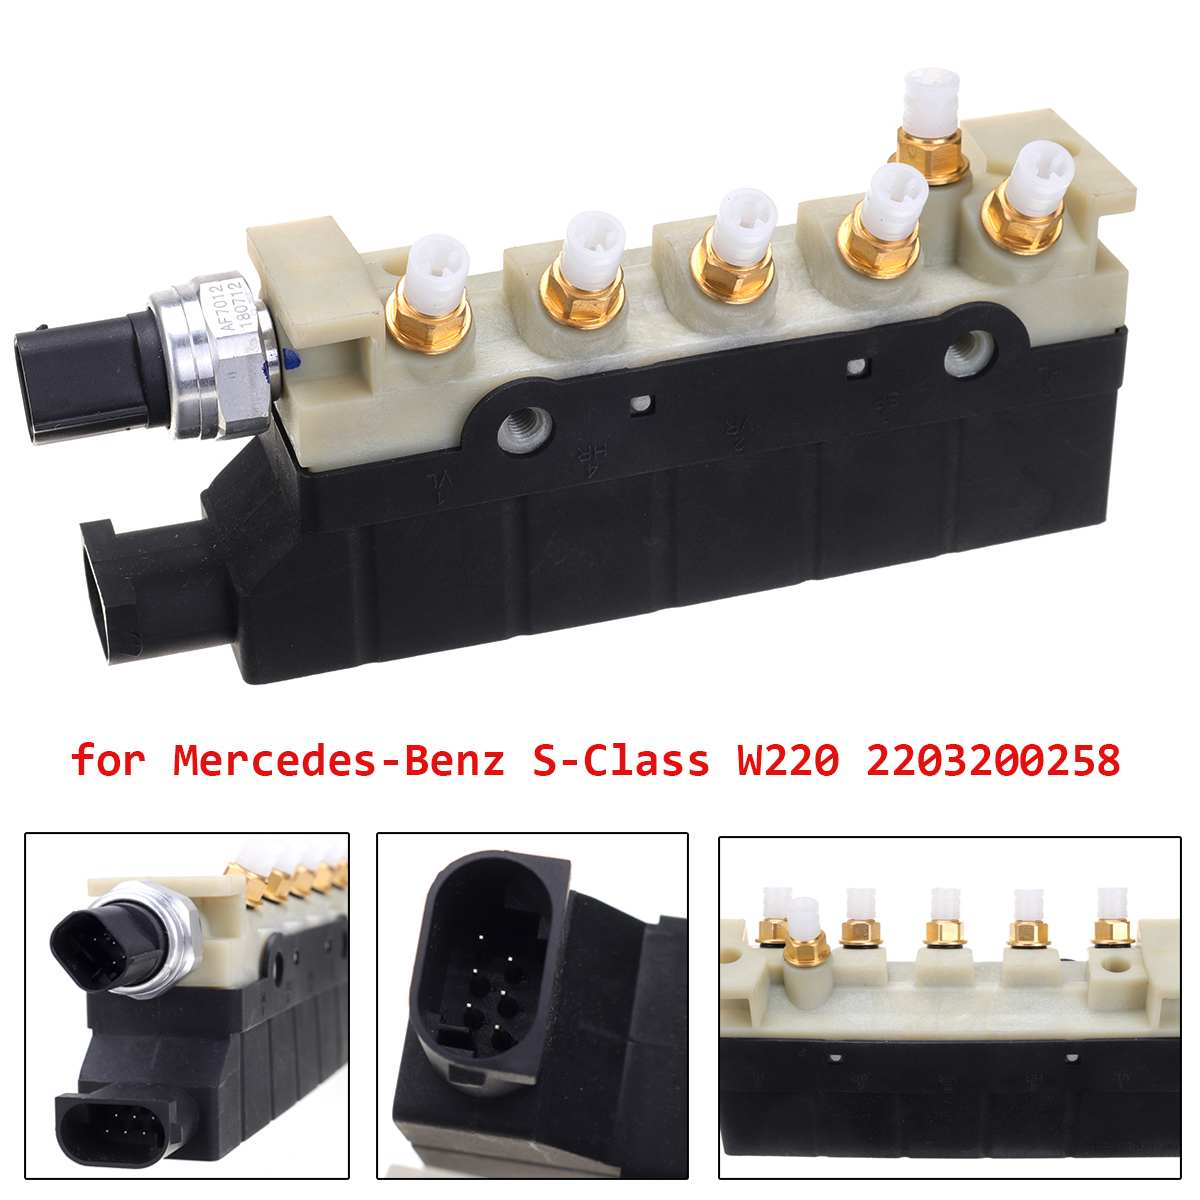 Air Suspension Compressor Valve Block 2203200258 for AMG 2000-2006 For Mercedes <font><b>Benz</b></font> S Class <font><b>W220</b></font> S350 S430 <font><b>S500</b></font> S600 S55 S65 image